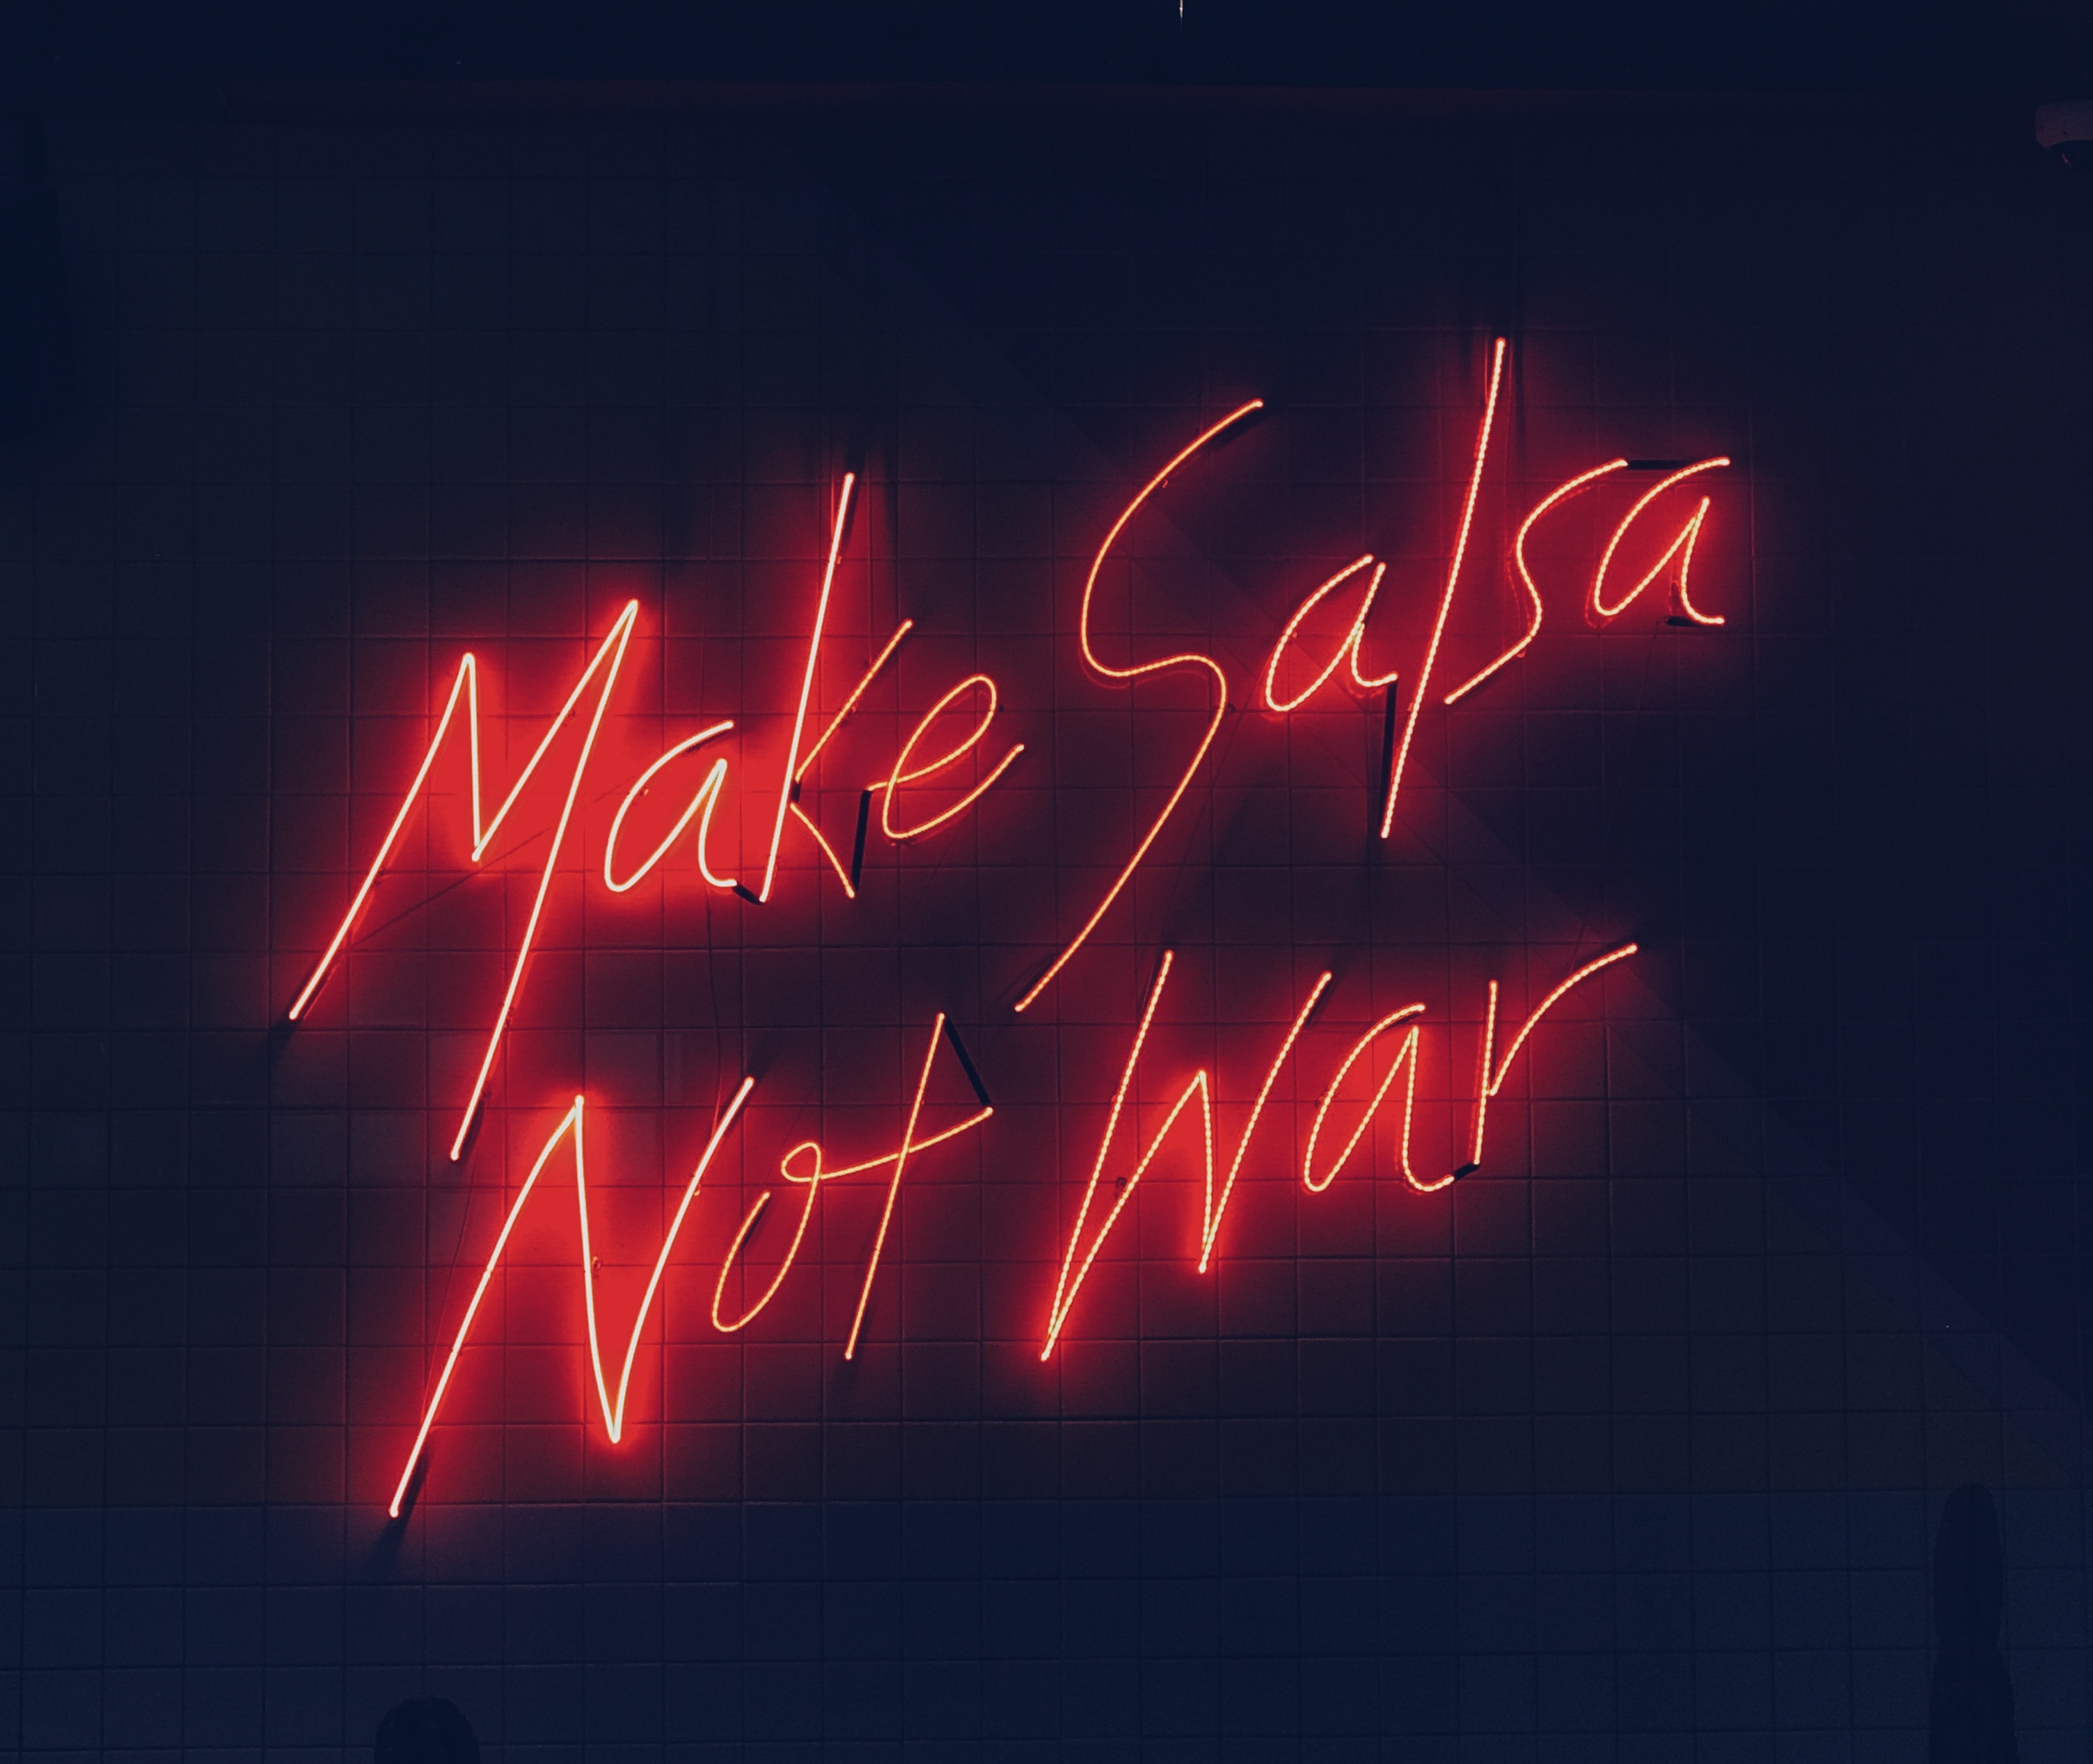 A neon sign that says make salsa not war